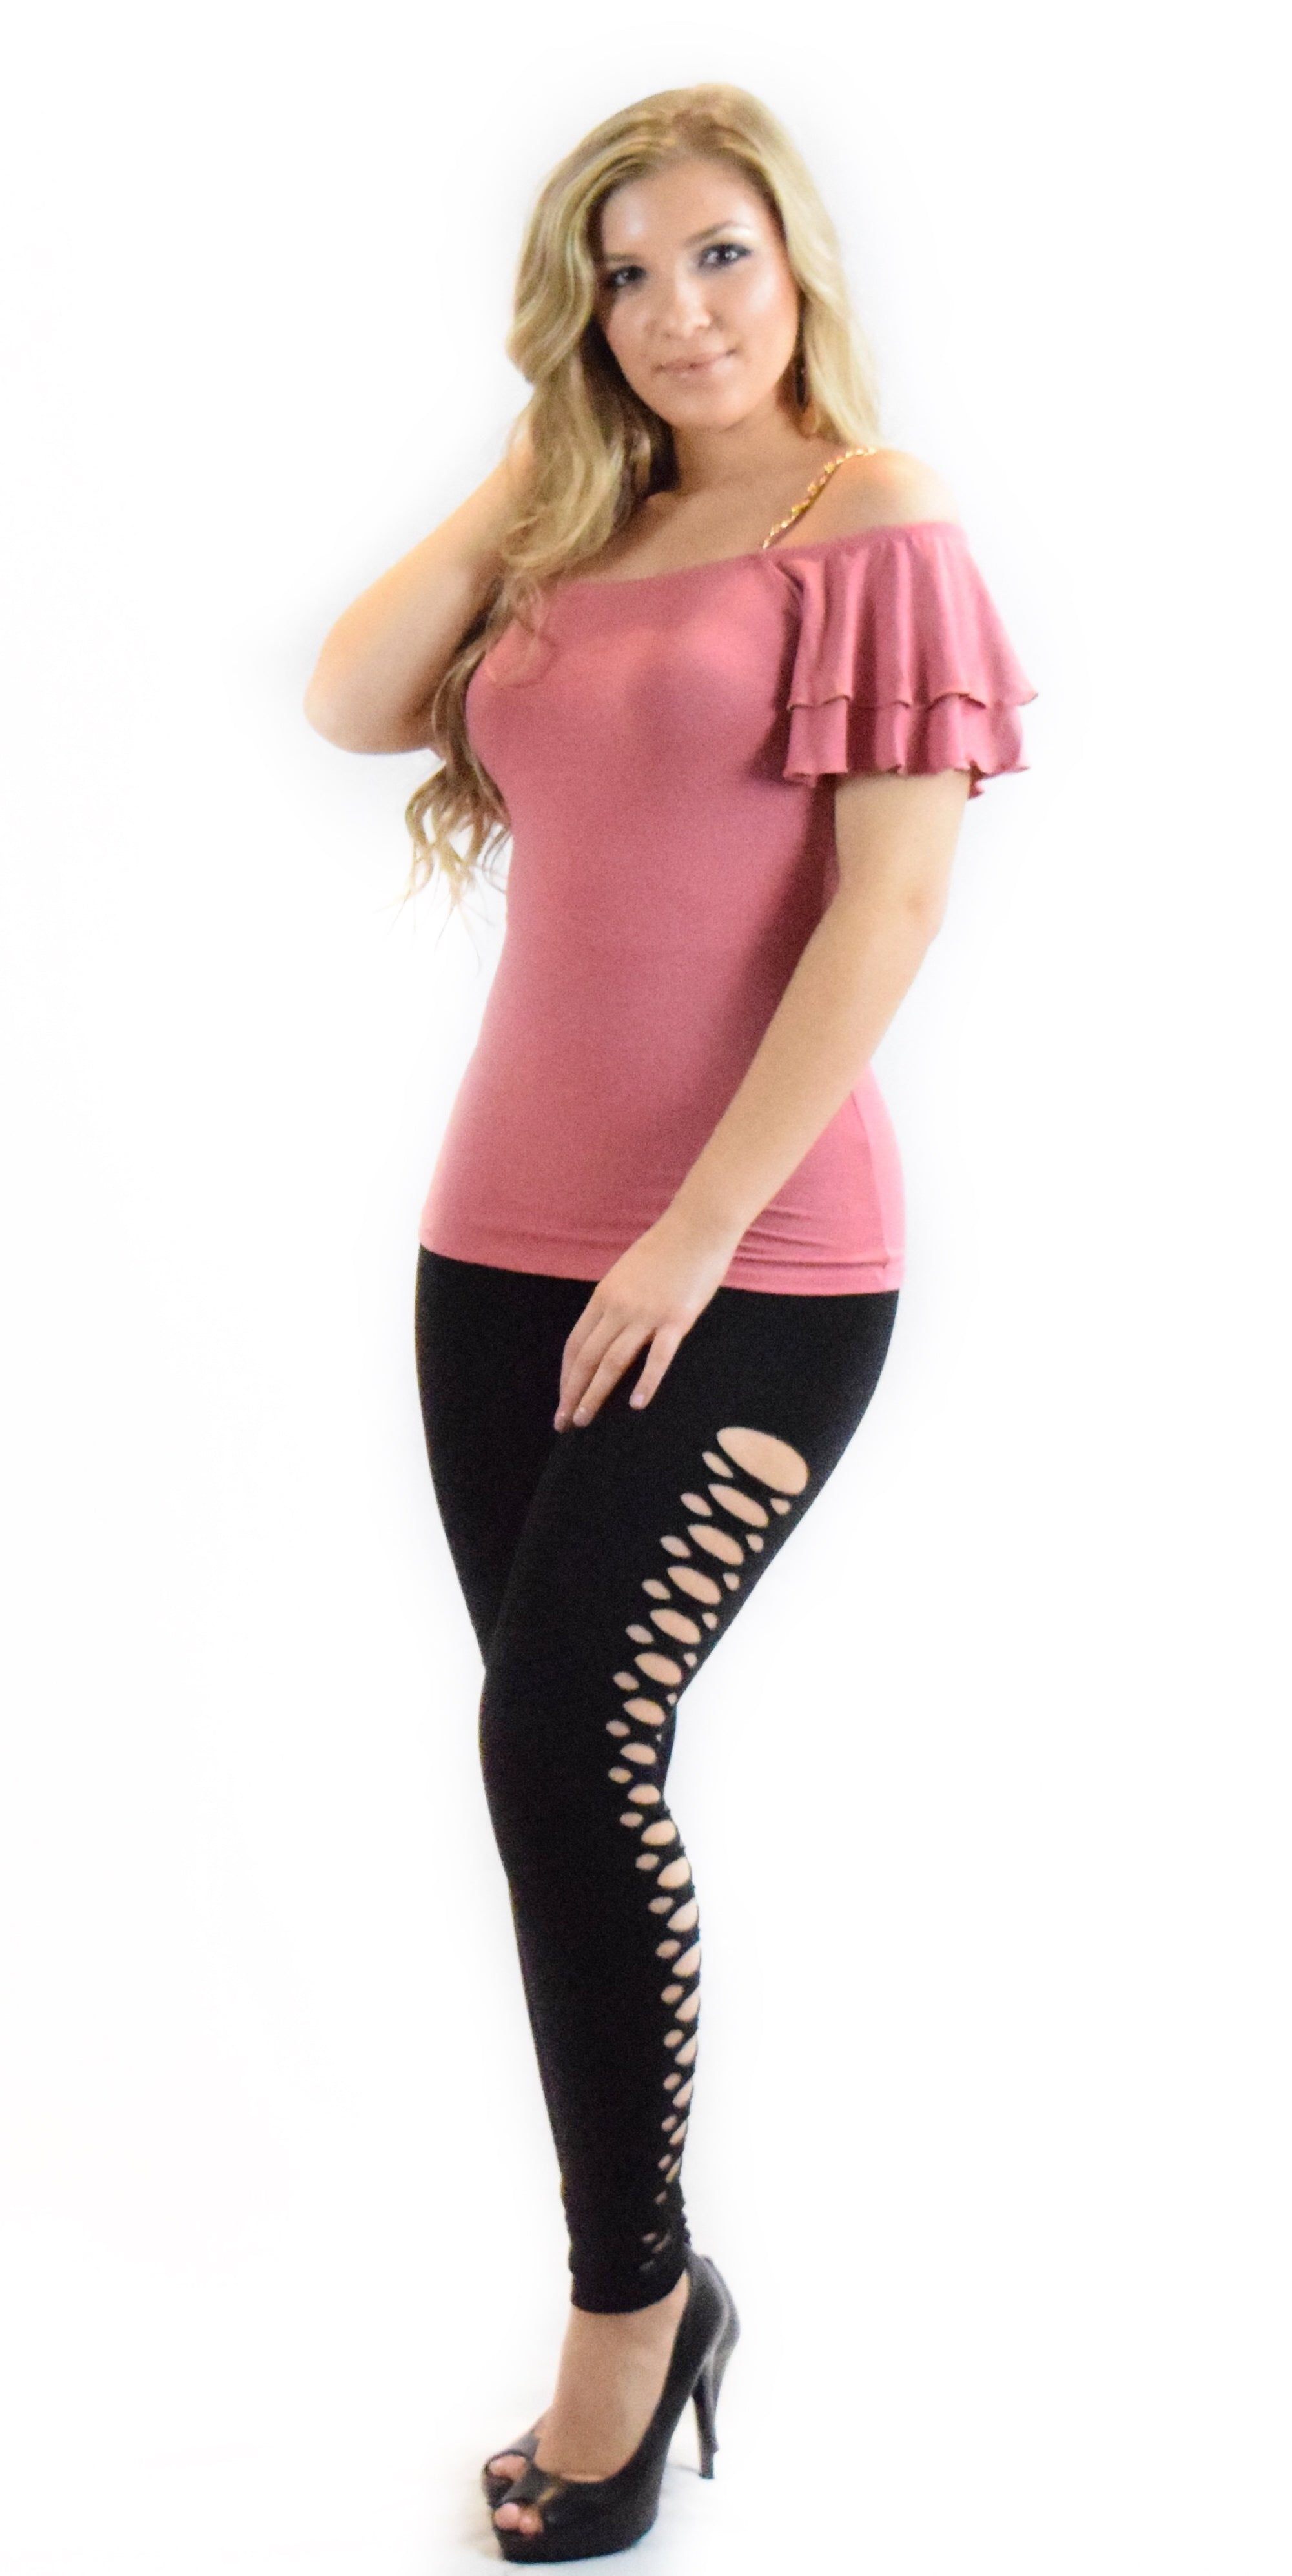 mauve chain spaghetti top pink curve hugging comfortable fashion clothing woman trending style